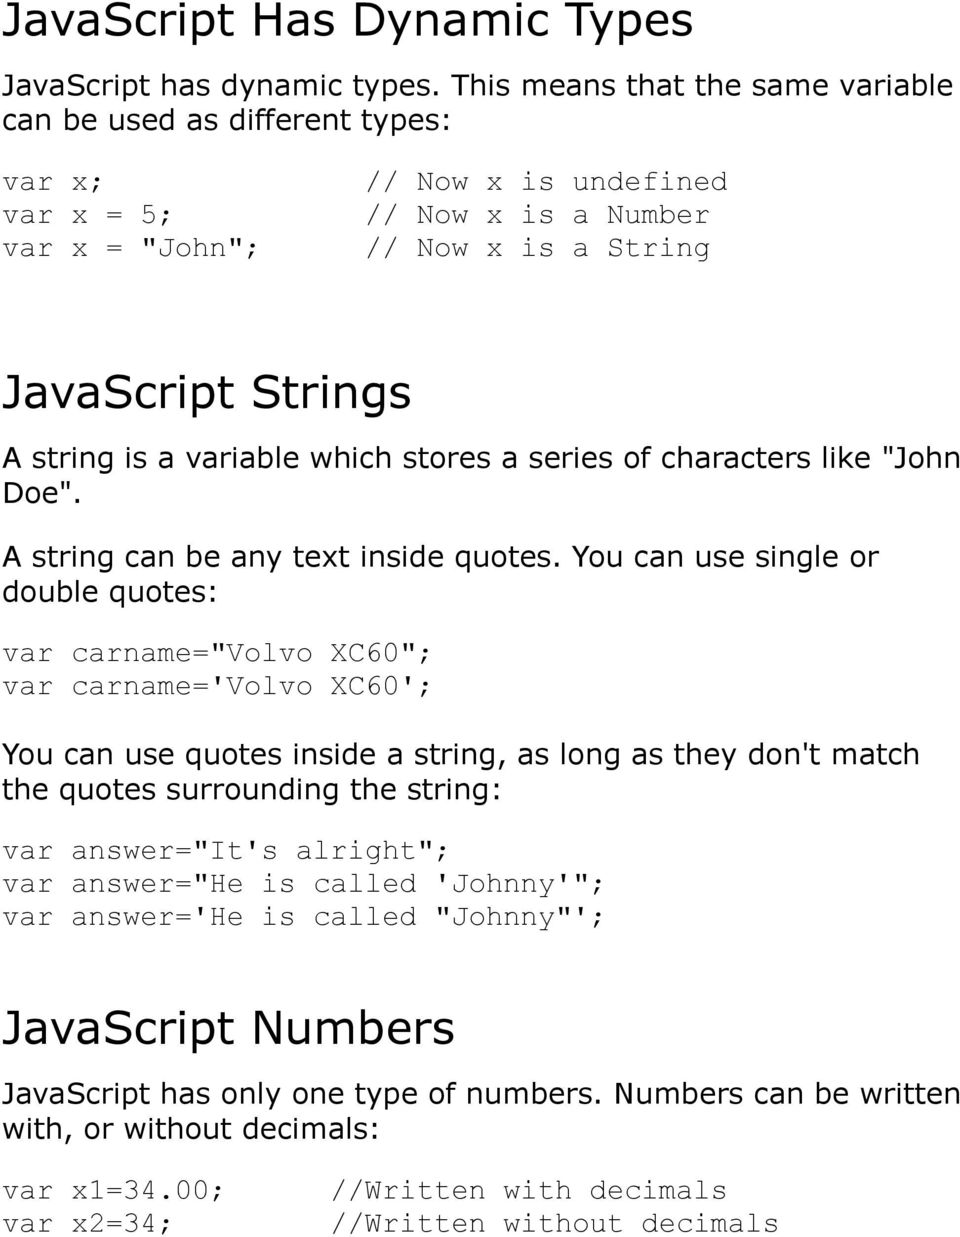 JavaScripts in HTML must be inserted between <script> and